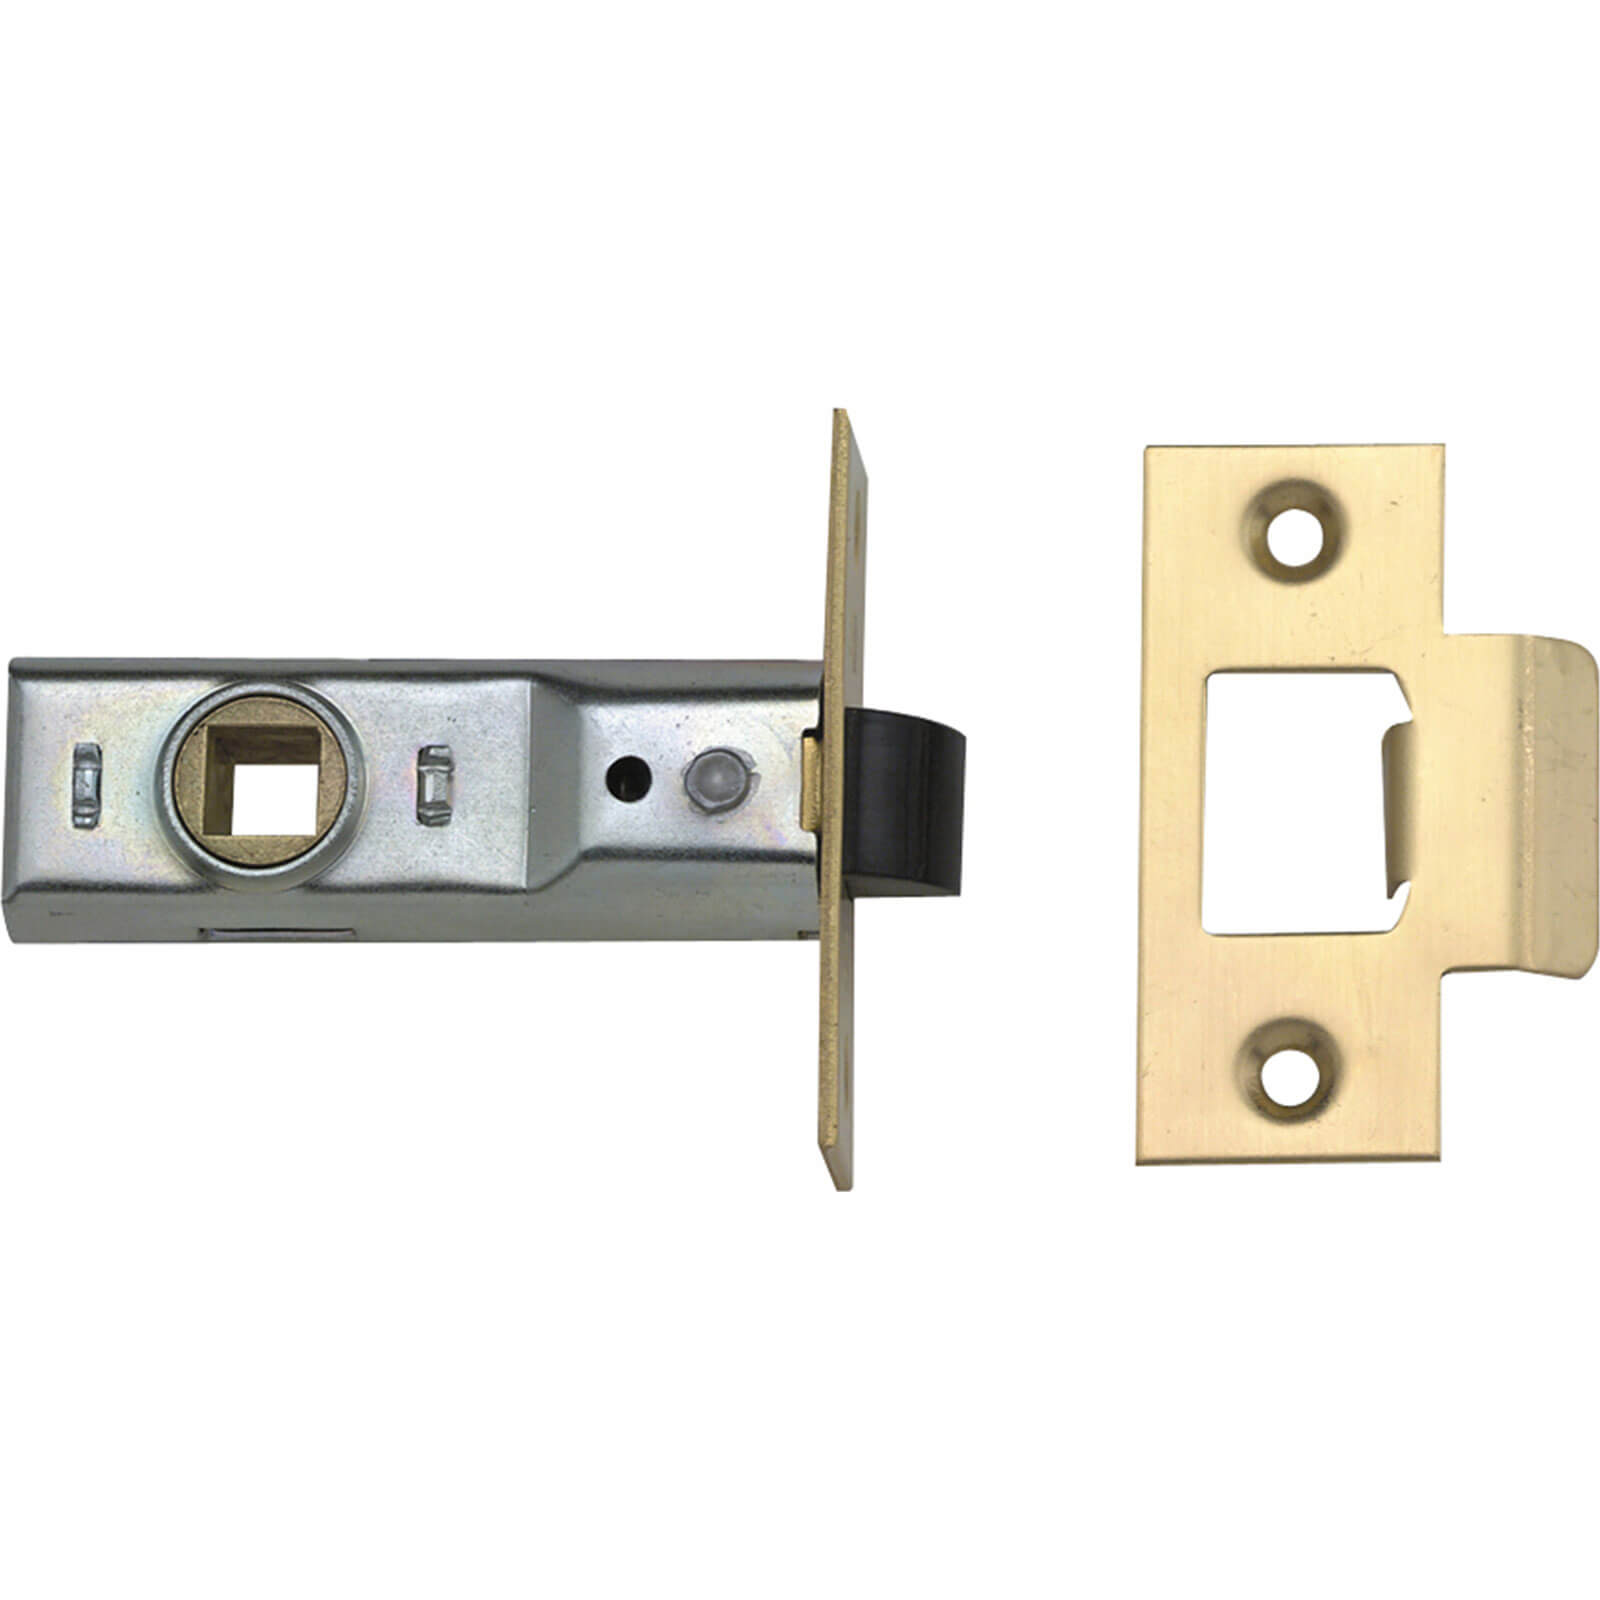 Yale Locks M888 Rebated Mortice Latches 64mm / 2.5